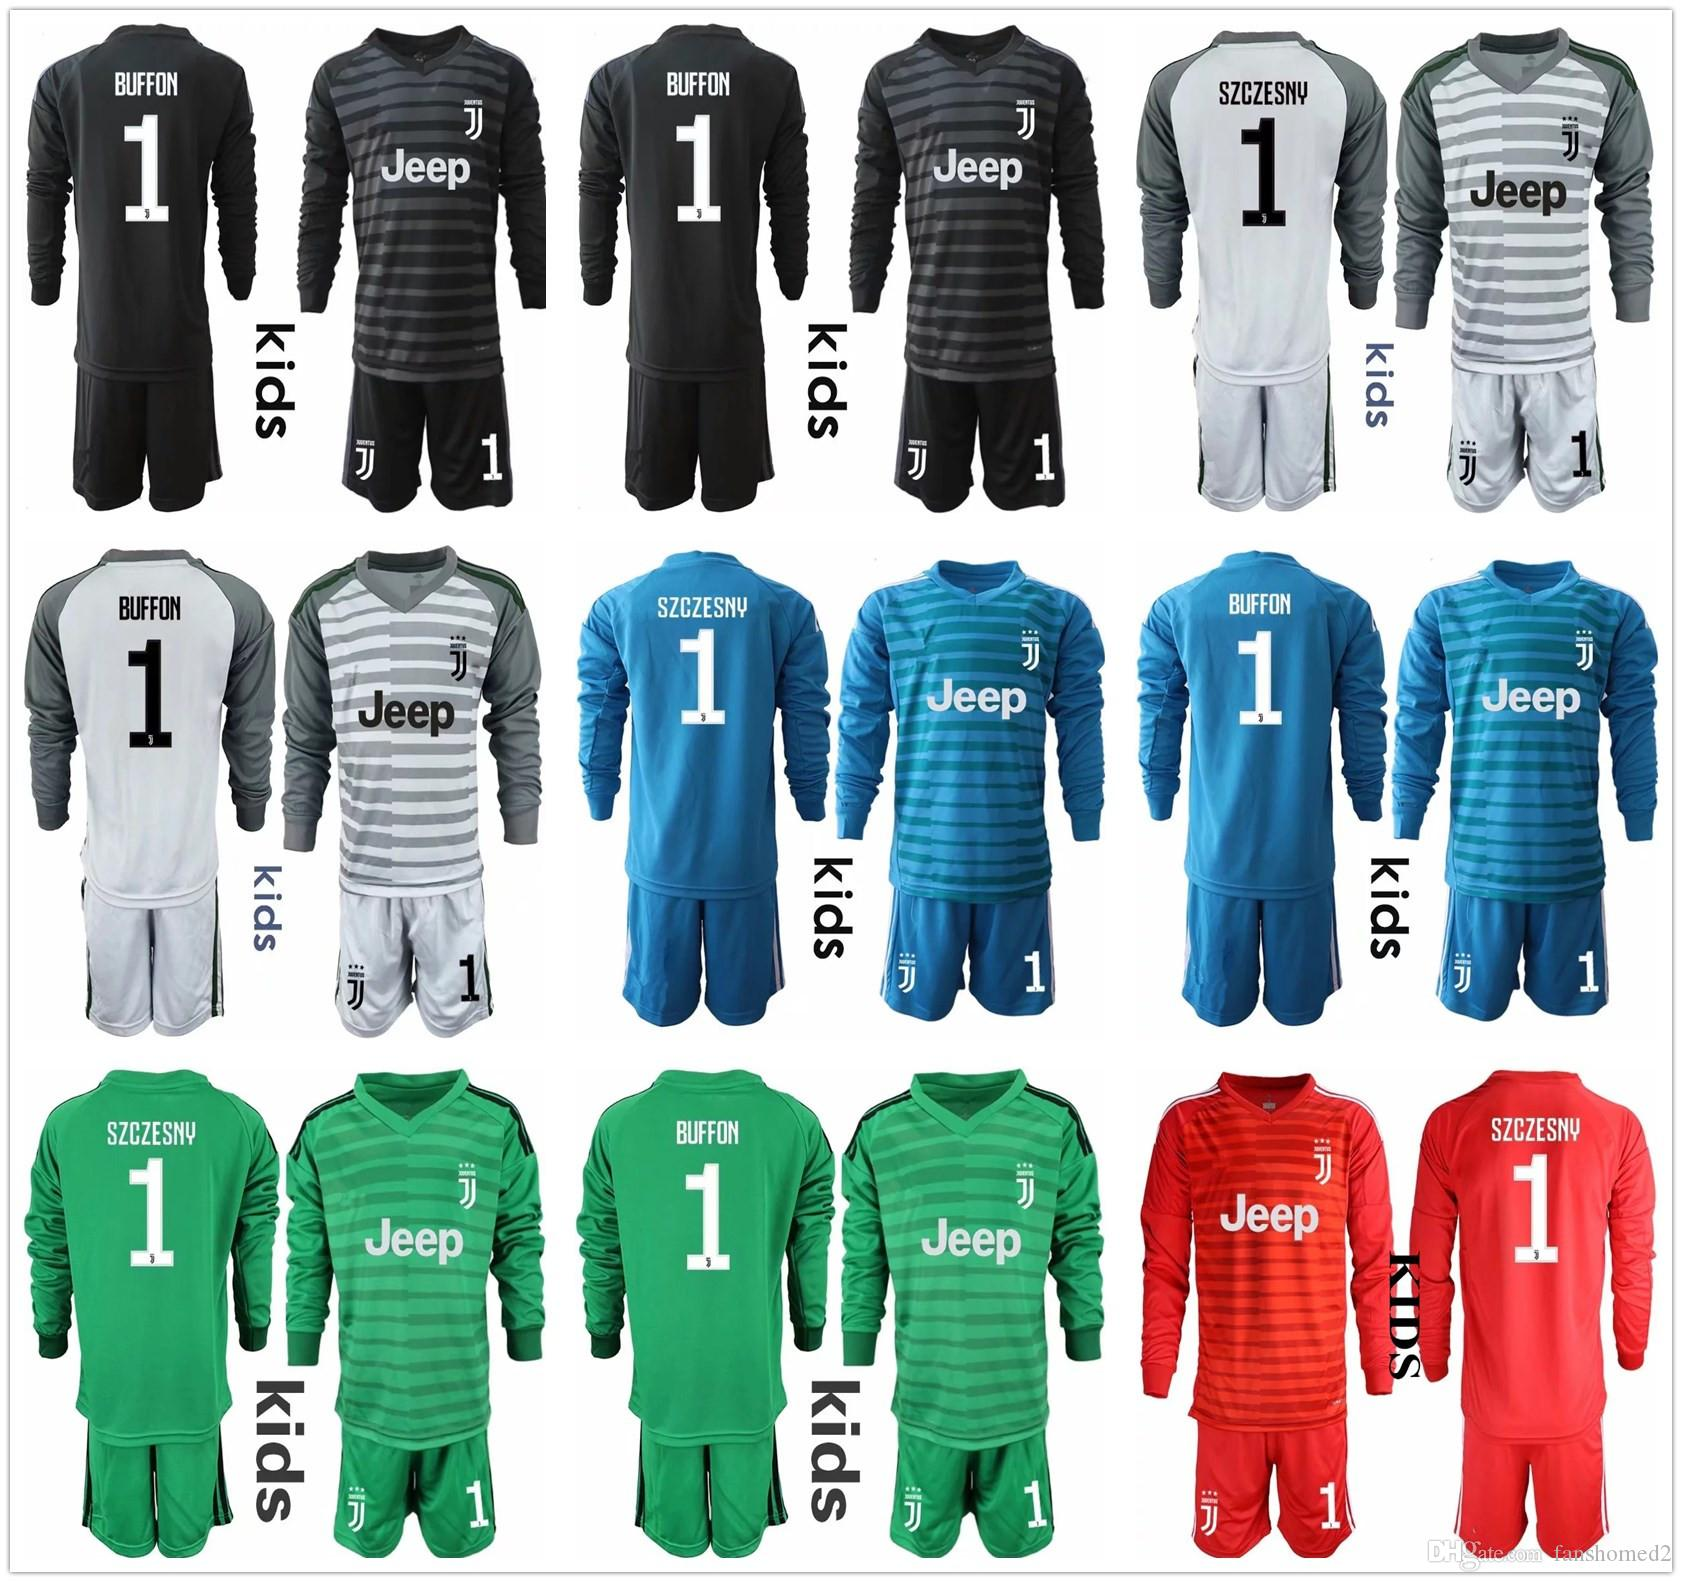 294de451e 2019 2018 19 Youth Long Sleeve Juvs Goalkeeper Jerseys Kids Soccer Sets  1  Buffon Kid Goalkeeper Jerseys  1 Szczesny Children Boys Uniform From  Fanshomed2